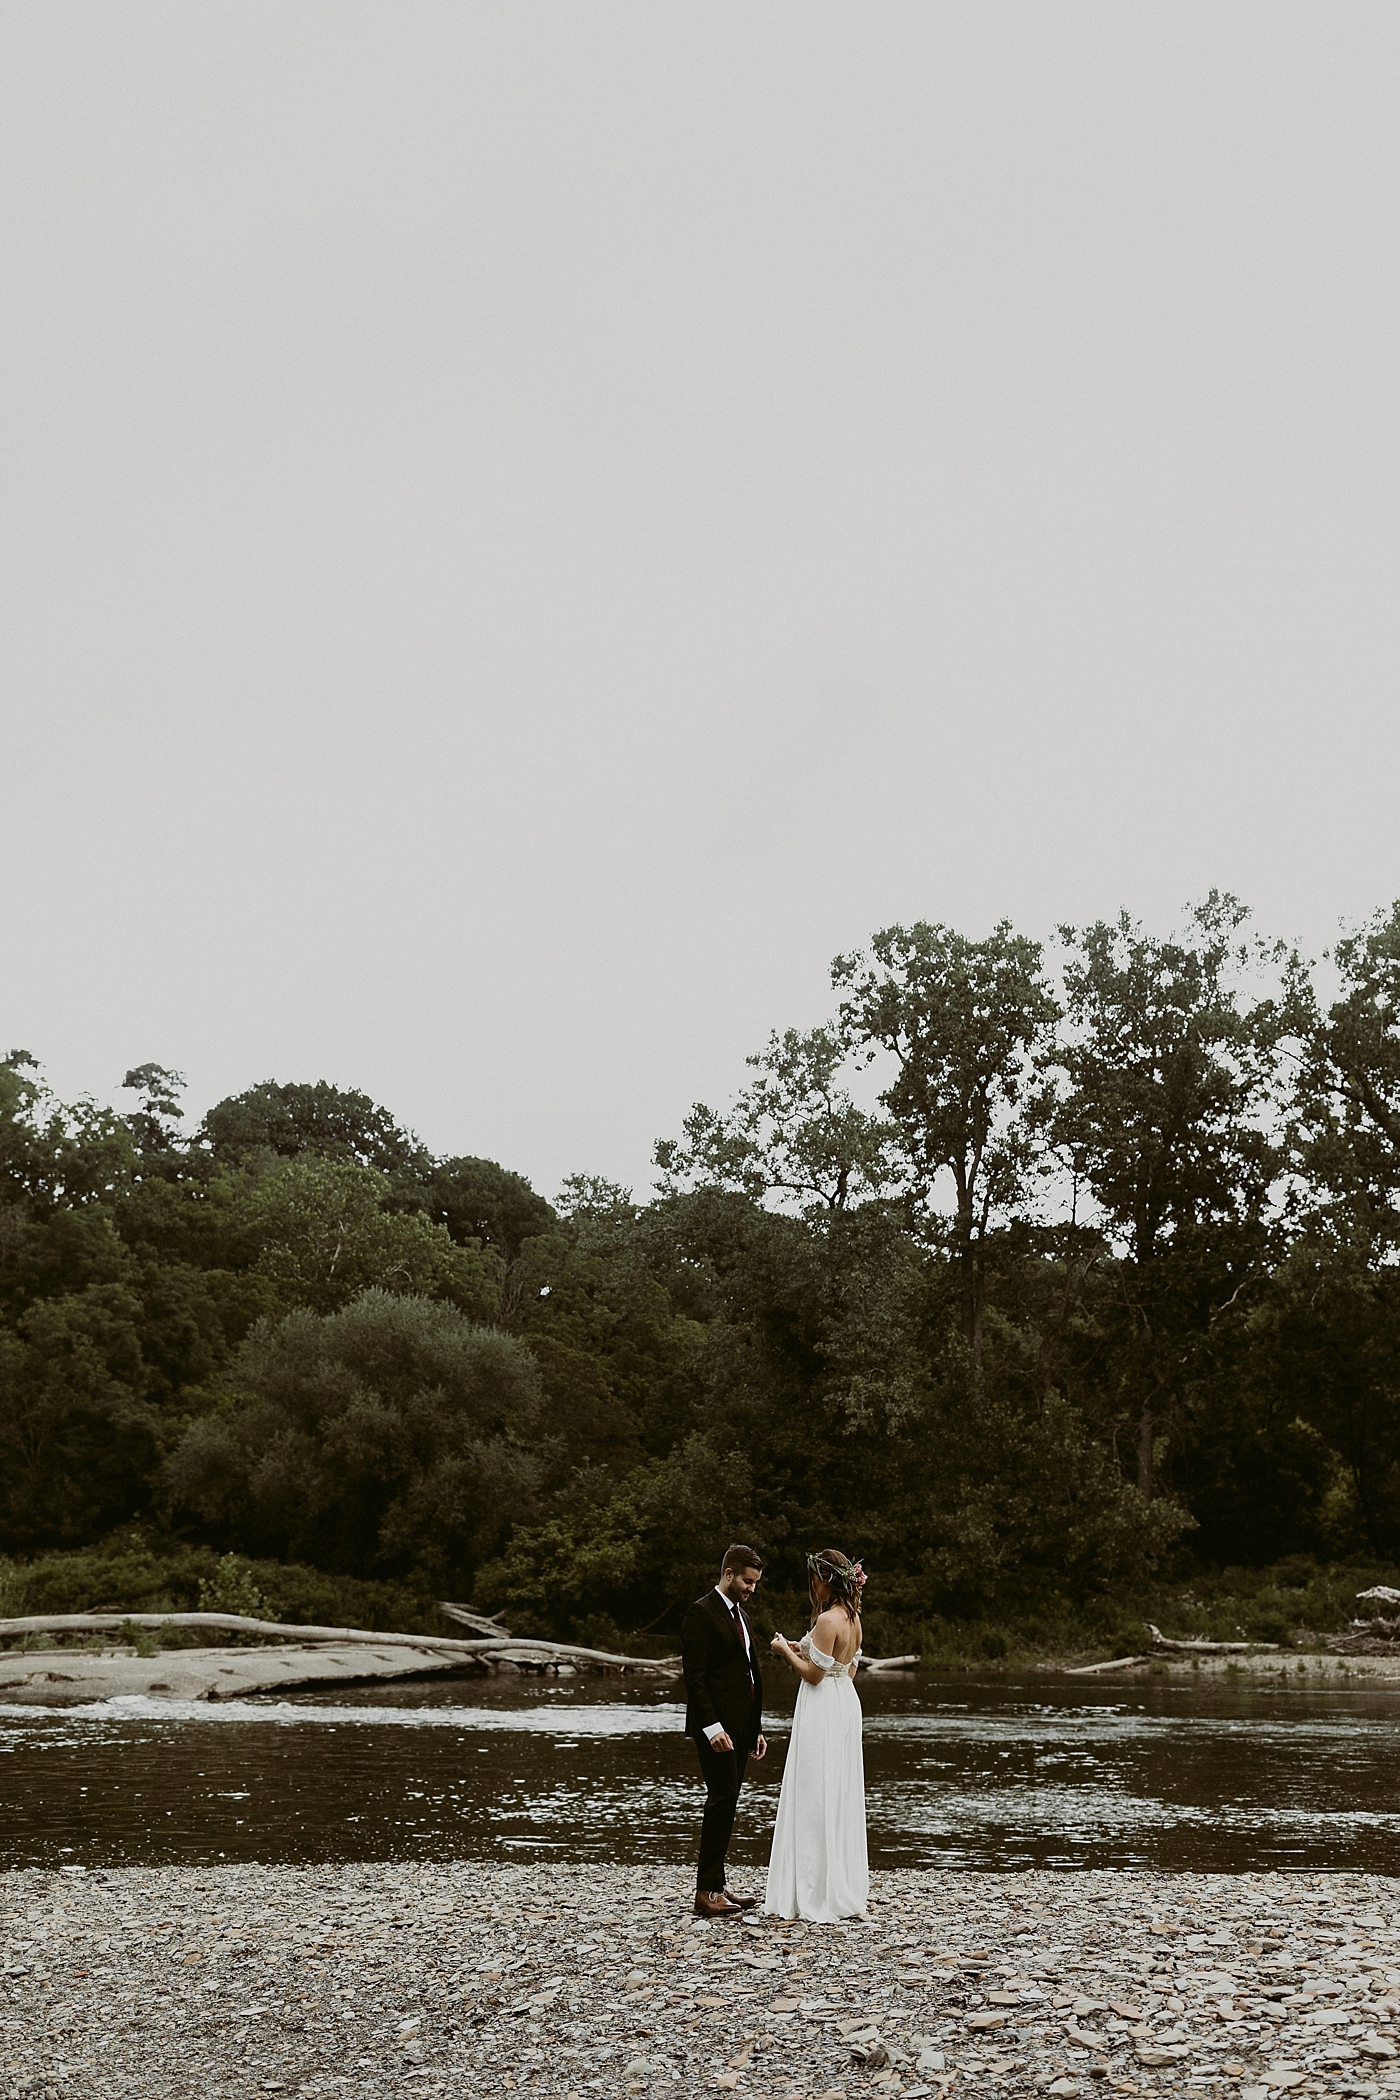 Woodland-Theater-Wedding-Molly+Ryan_MJPHOTO-179.jpg